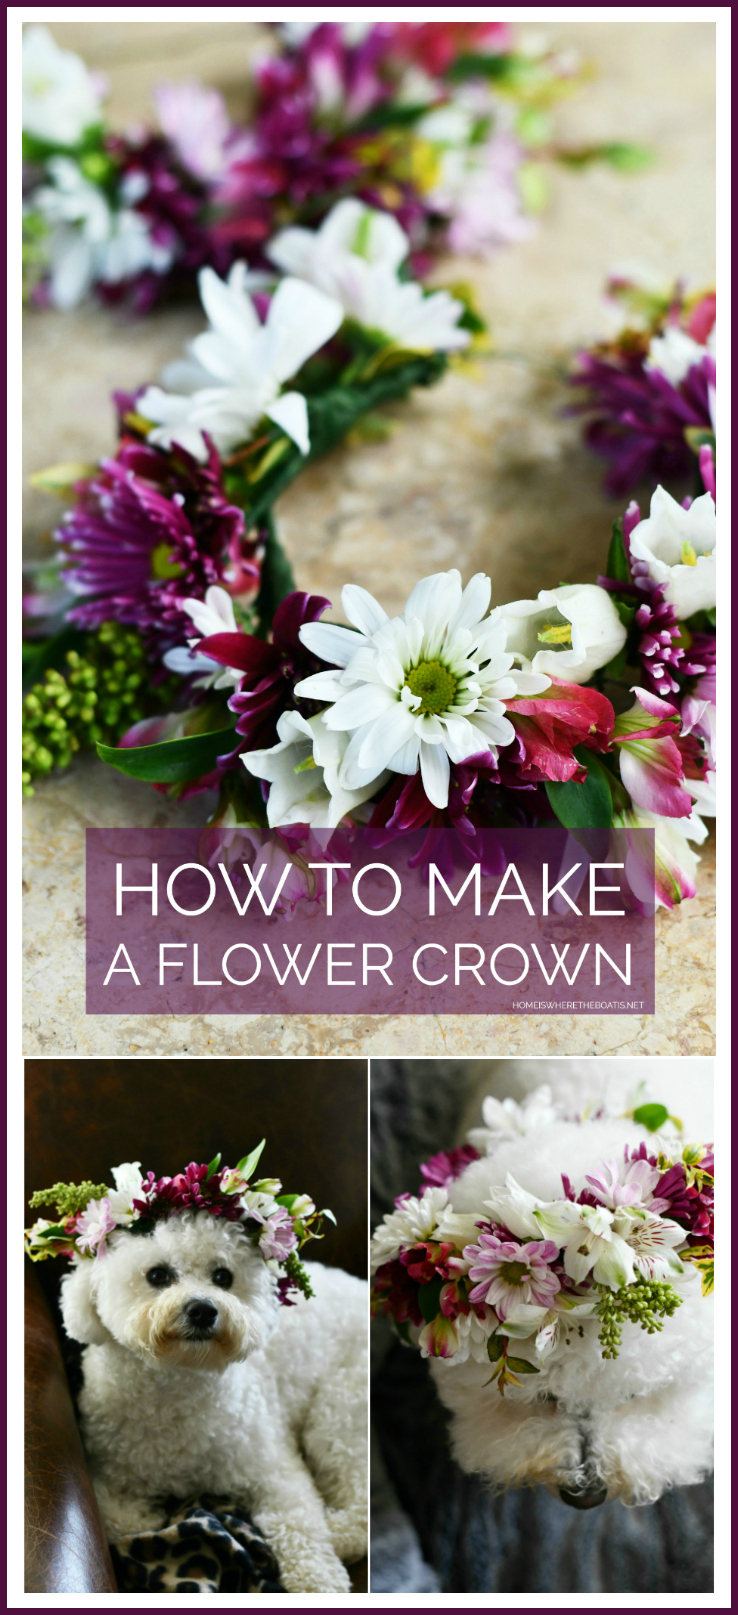 Create a flower crown for you or your pup to celebrate birthdays, weddings or for any special occasion. You'll find helpful tips and techniques, along with floral longevity tips.